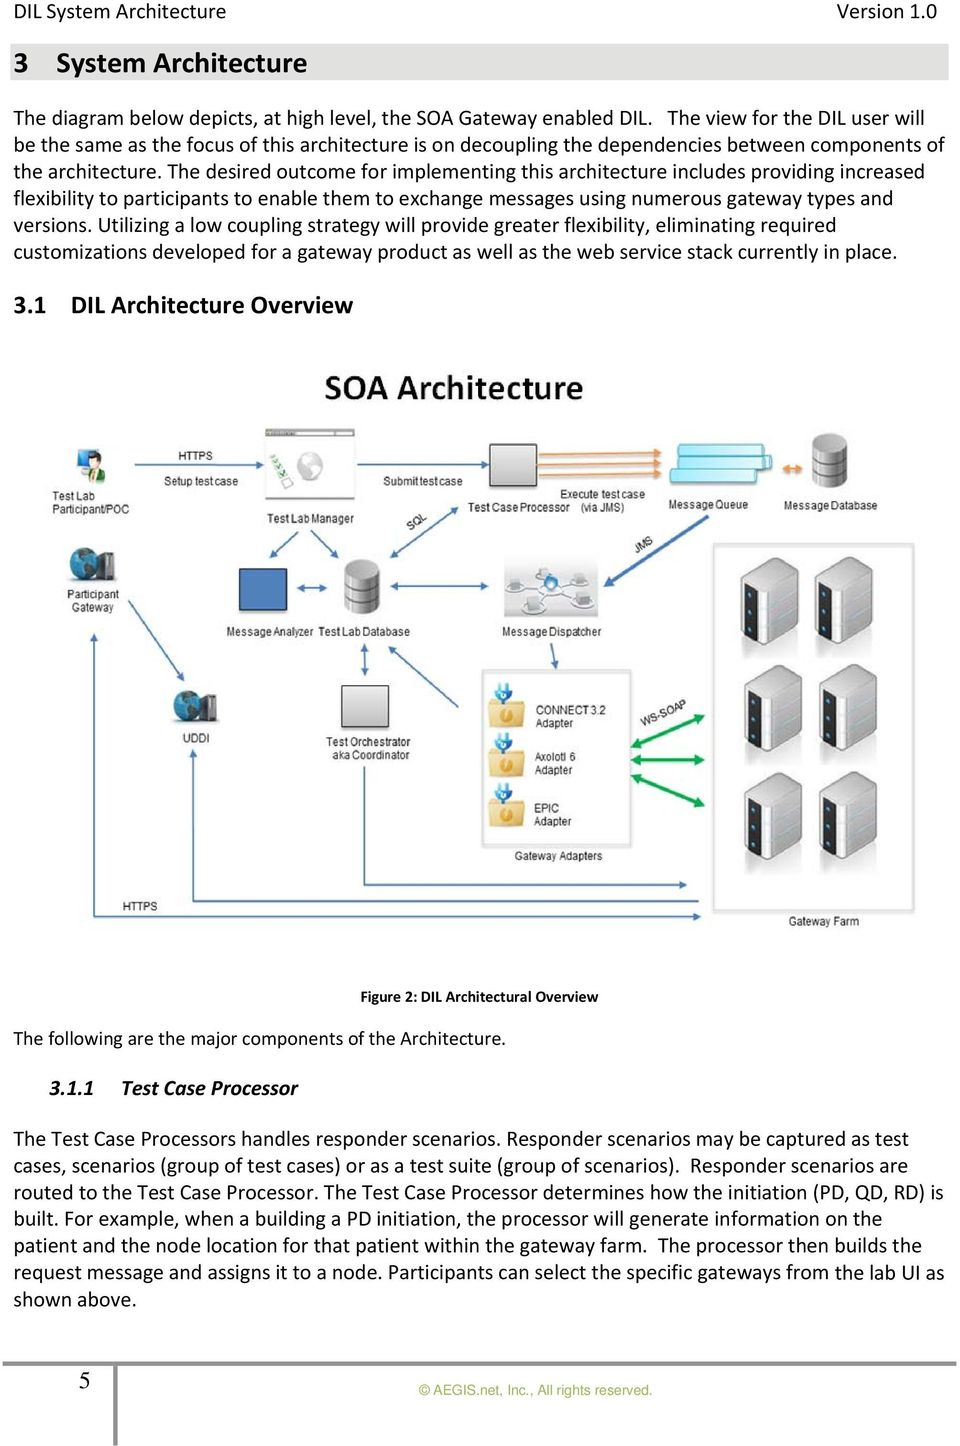 The desired outcome for implementing this architecture includes providing increased flexibility to participants to enable them to exchange messages using numerous gateway types and versions.